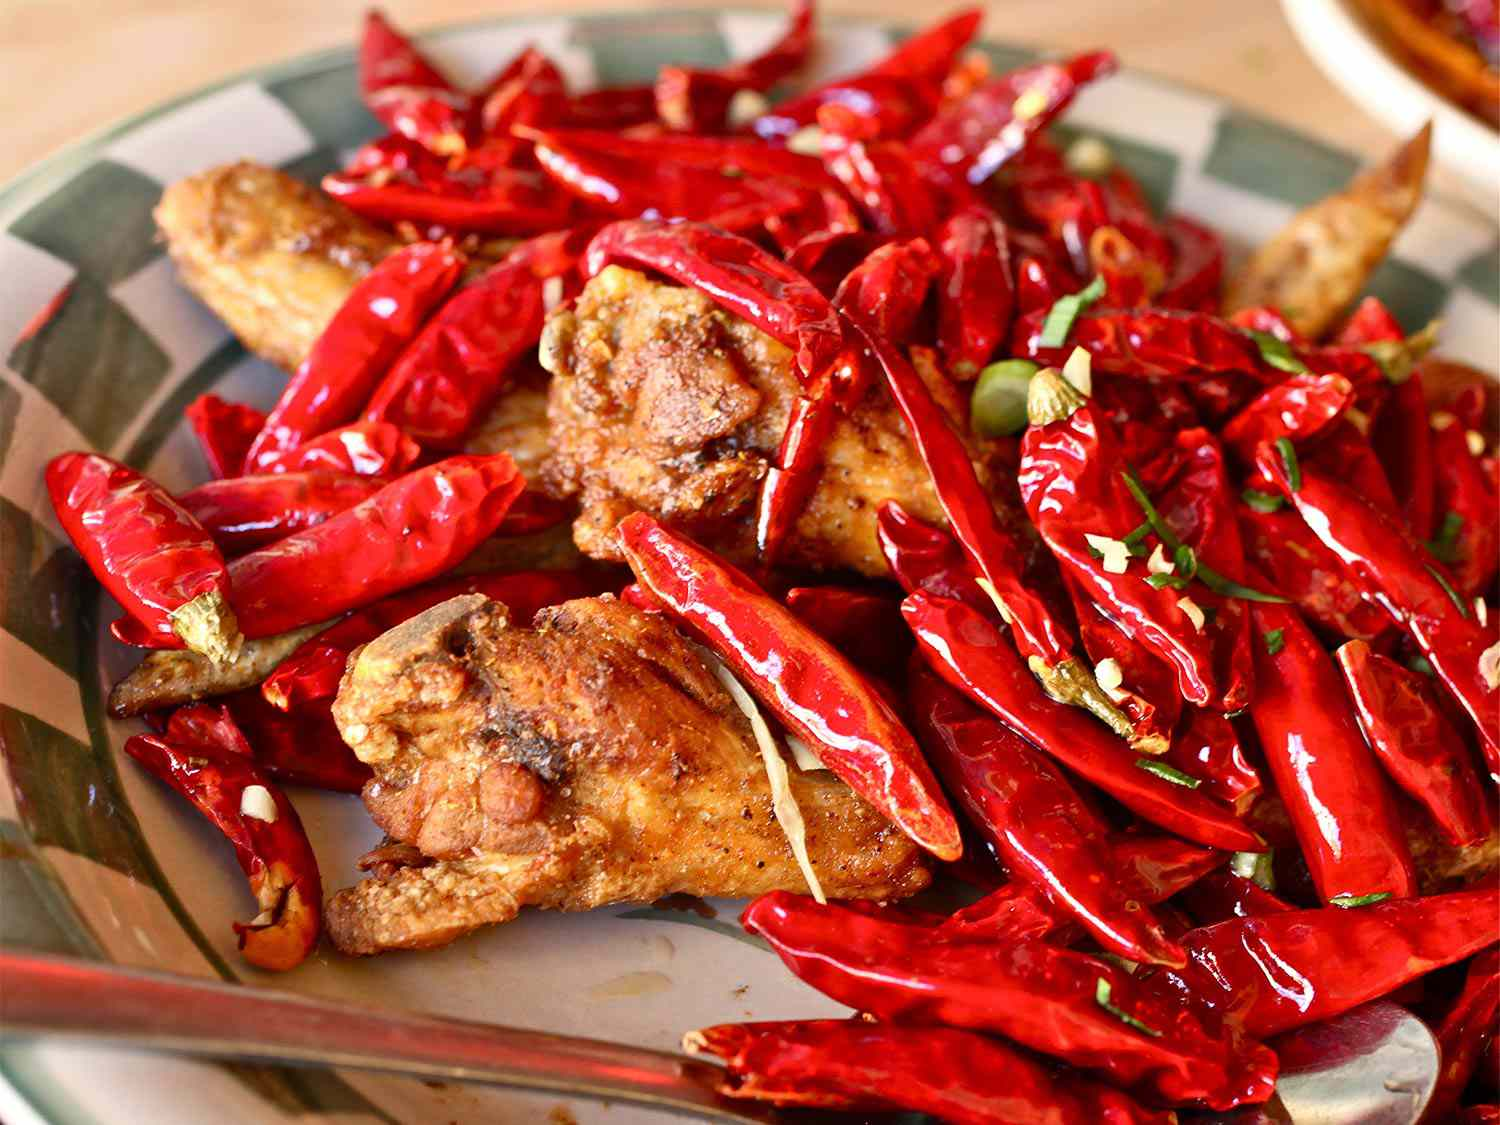 mission-chinese-fried-chicken-wings-kenji.jpg